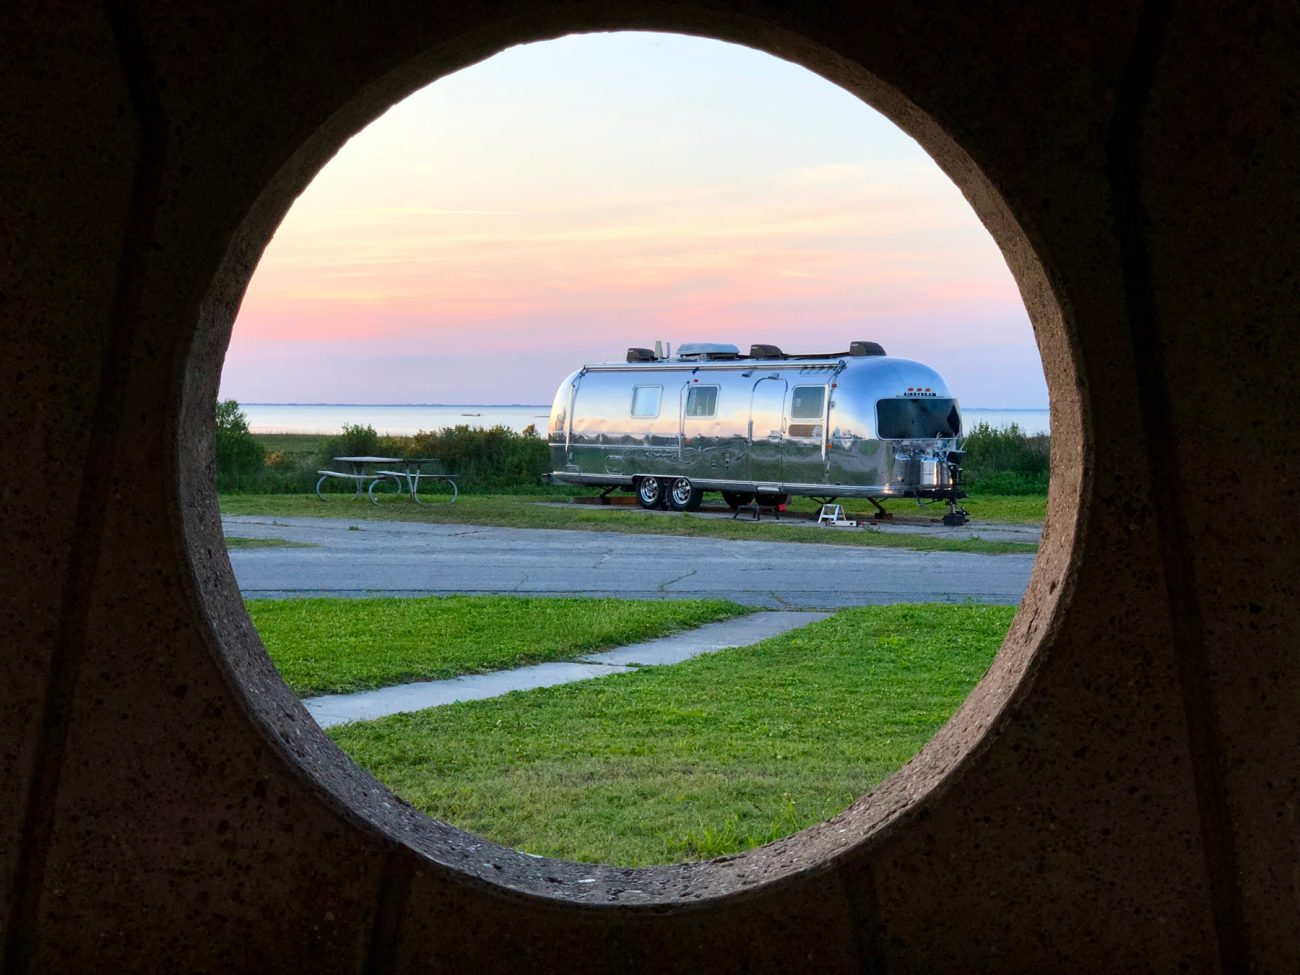 Airstream near cost at Galveston framed by circle